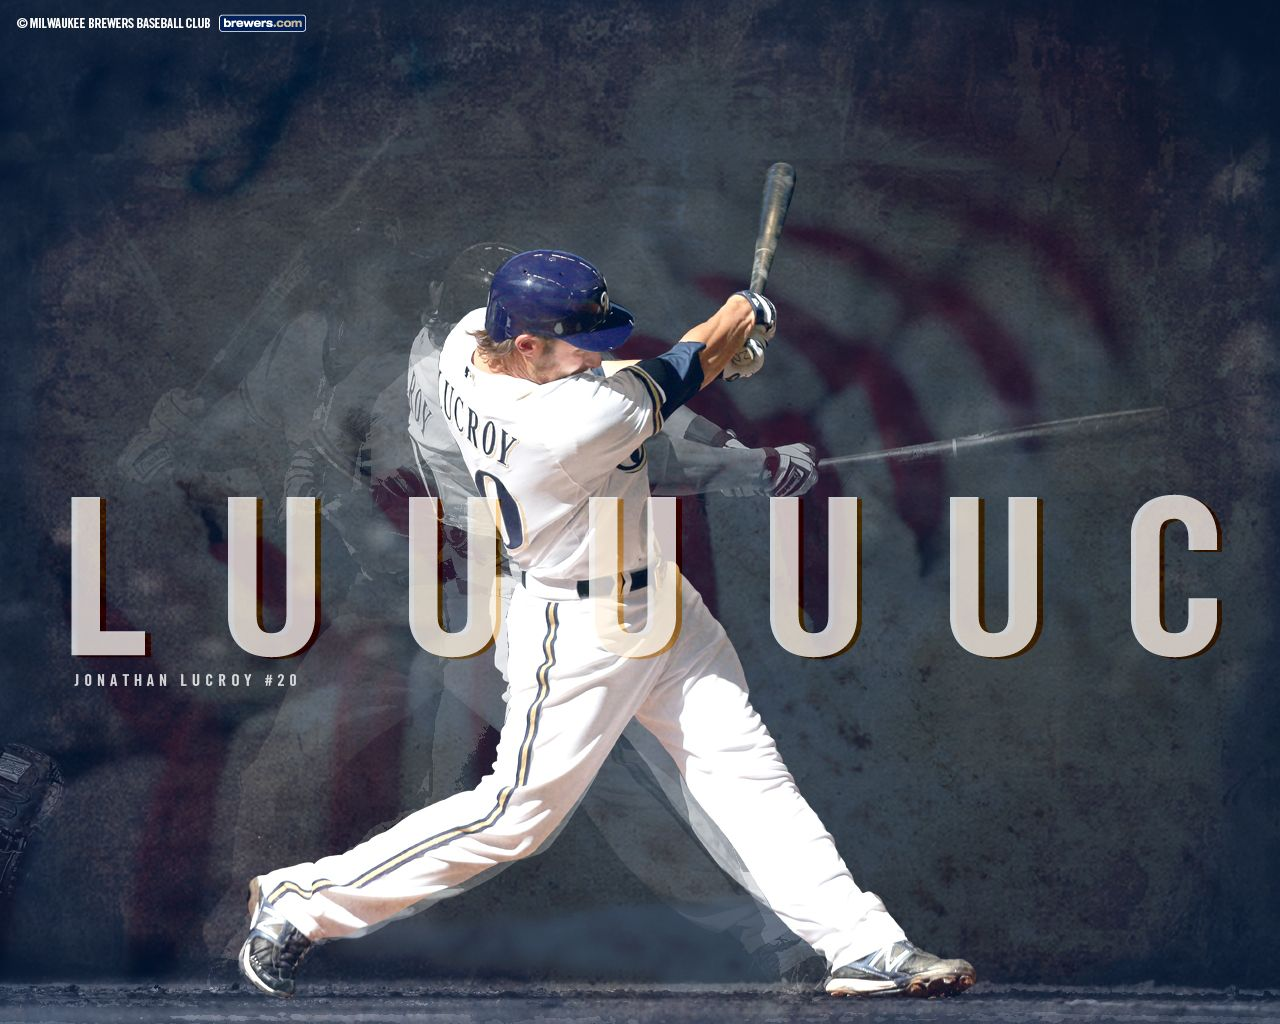 Join the Brew Crew With Milwaukee Brewers Desktop Wallpapers